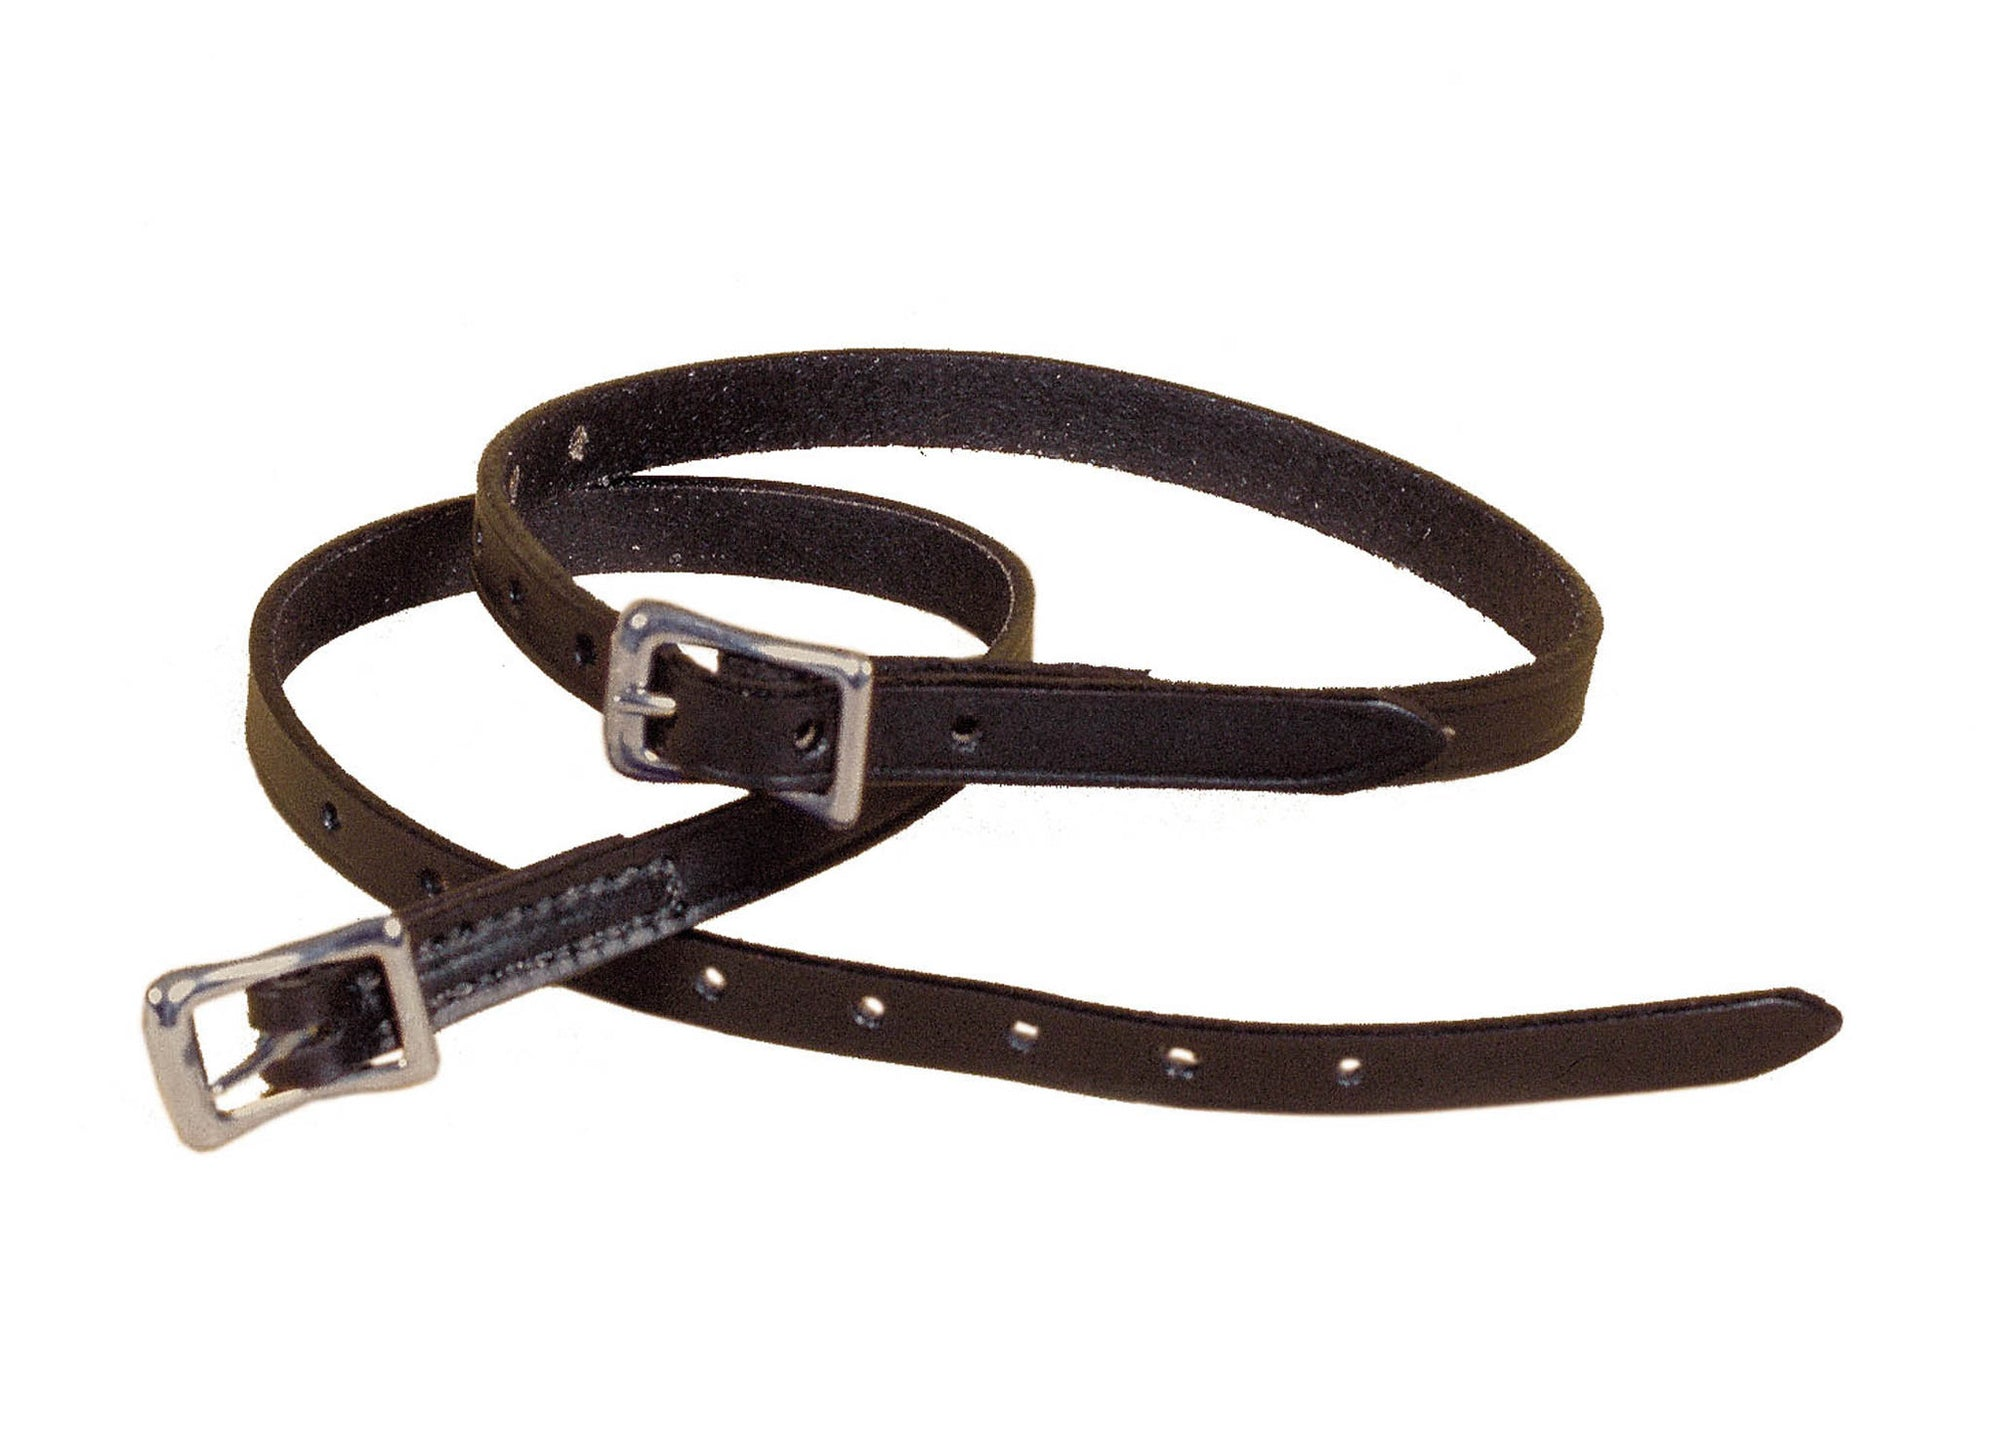 Tory Leather Child English Spur Strap w/ Double Keepers